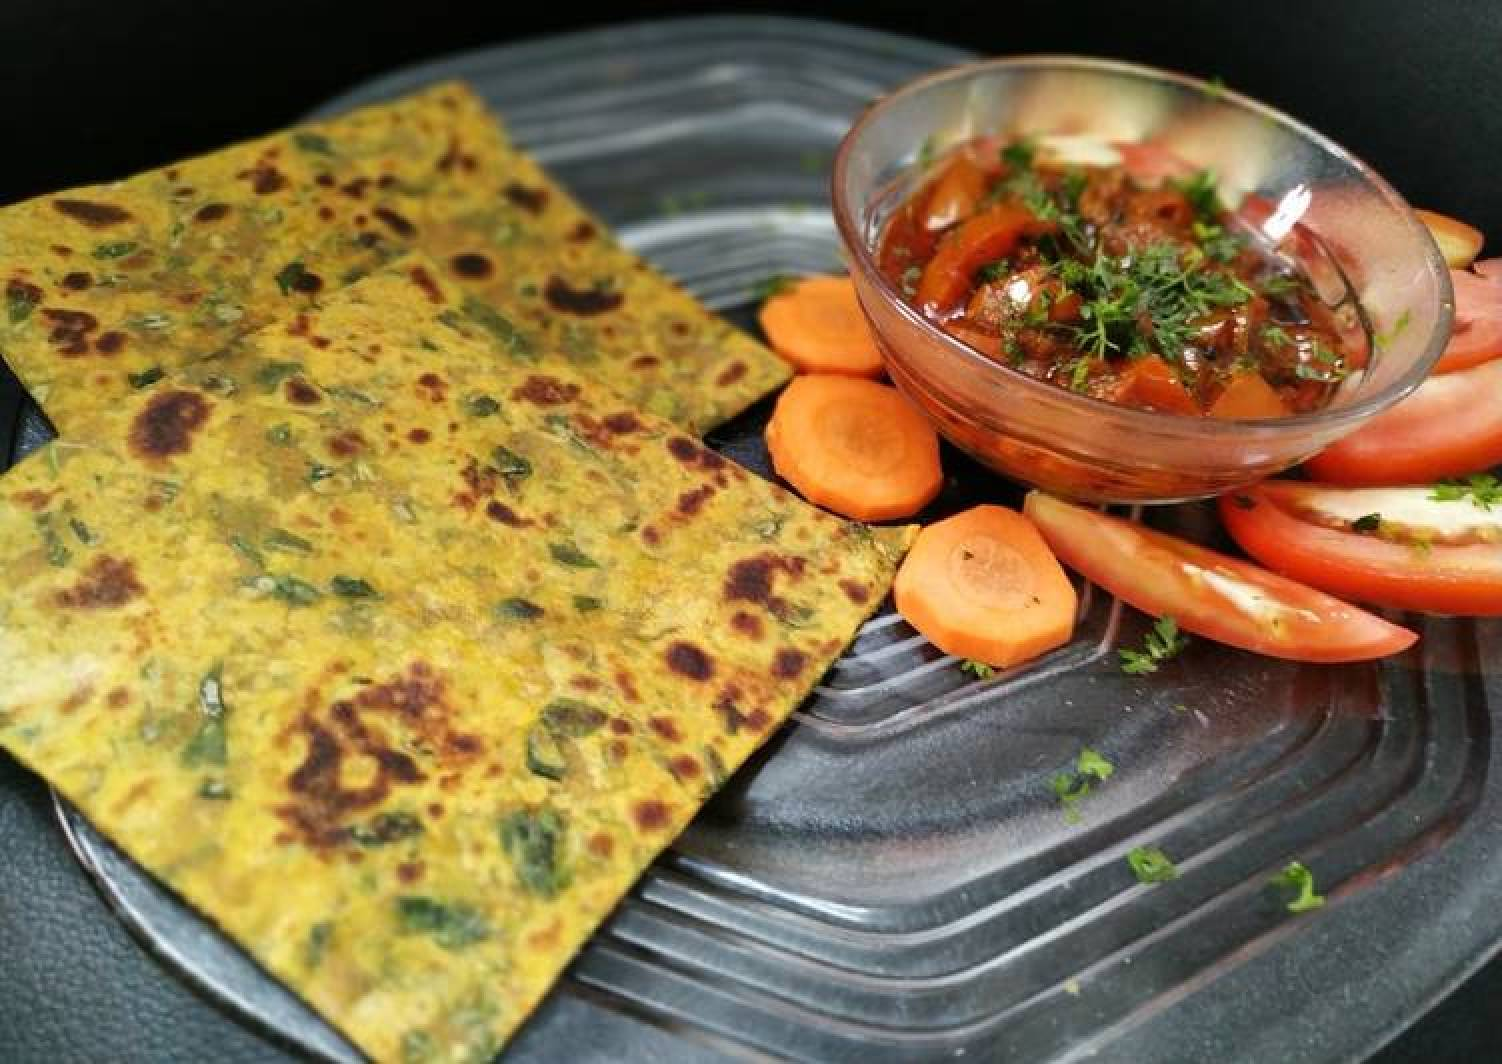 Methi ka paratha with tomato chutney